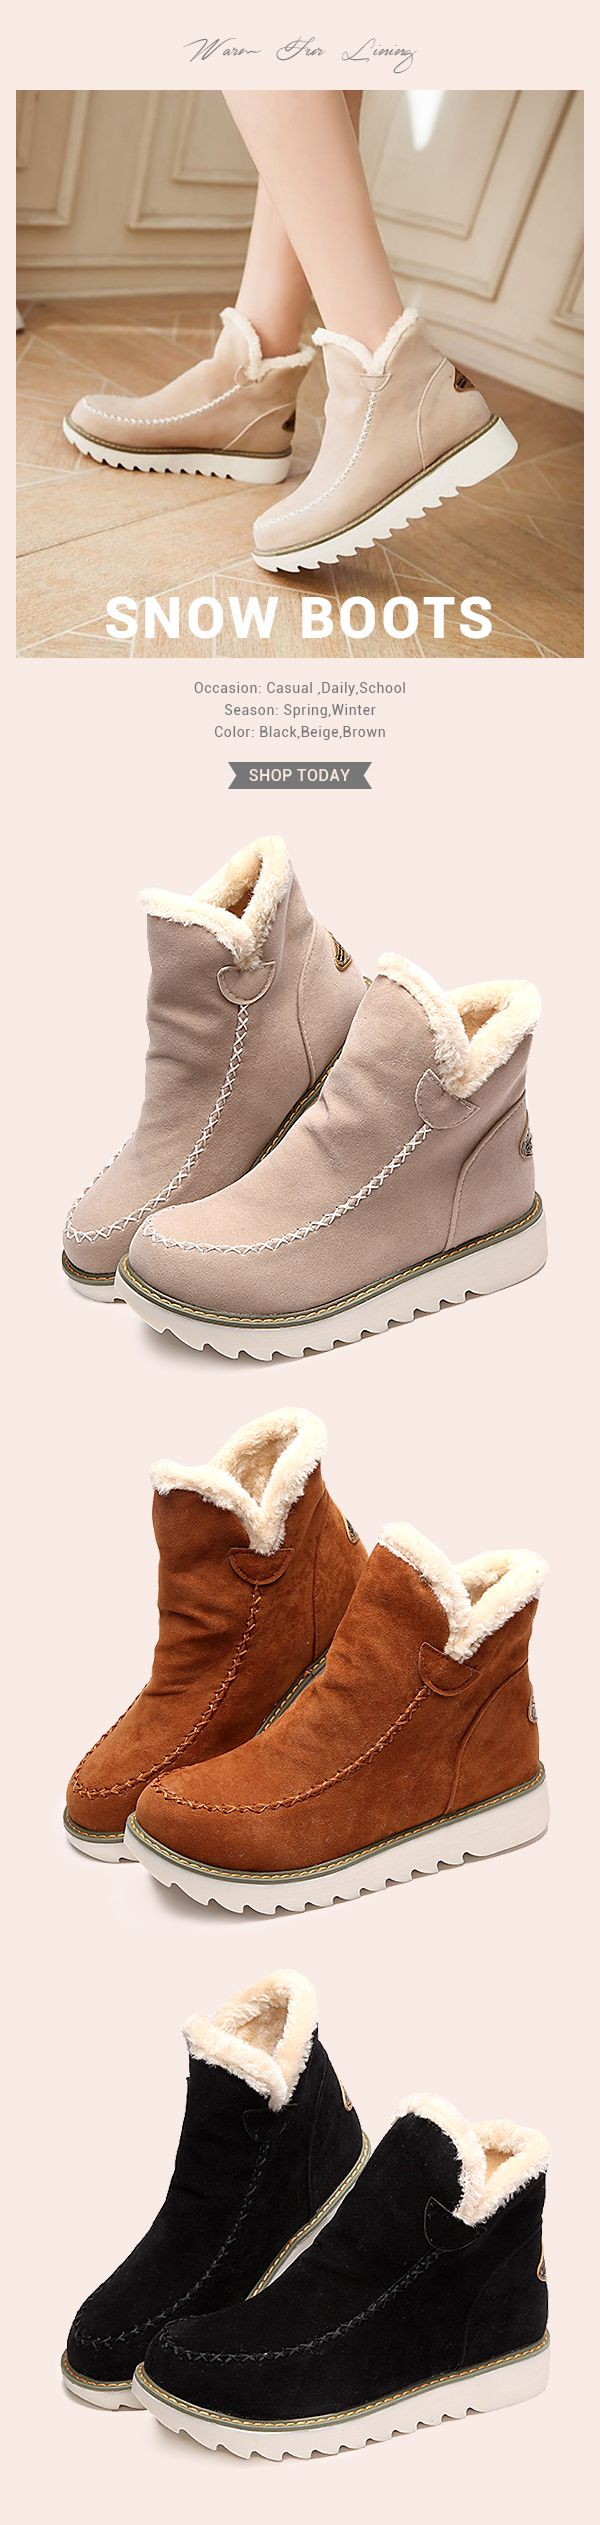 US$23.89  Big Size Pure Color Big Size Pure Color Warm Fur Lining Winter Ankle Snow Boots For Women